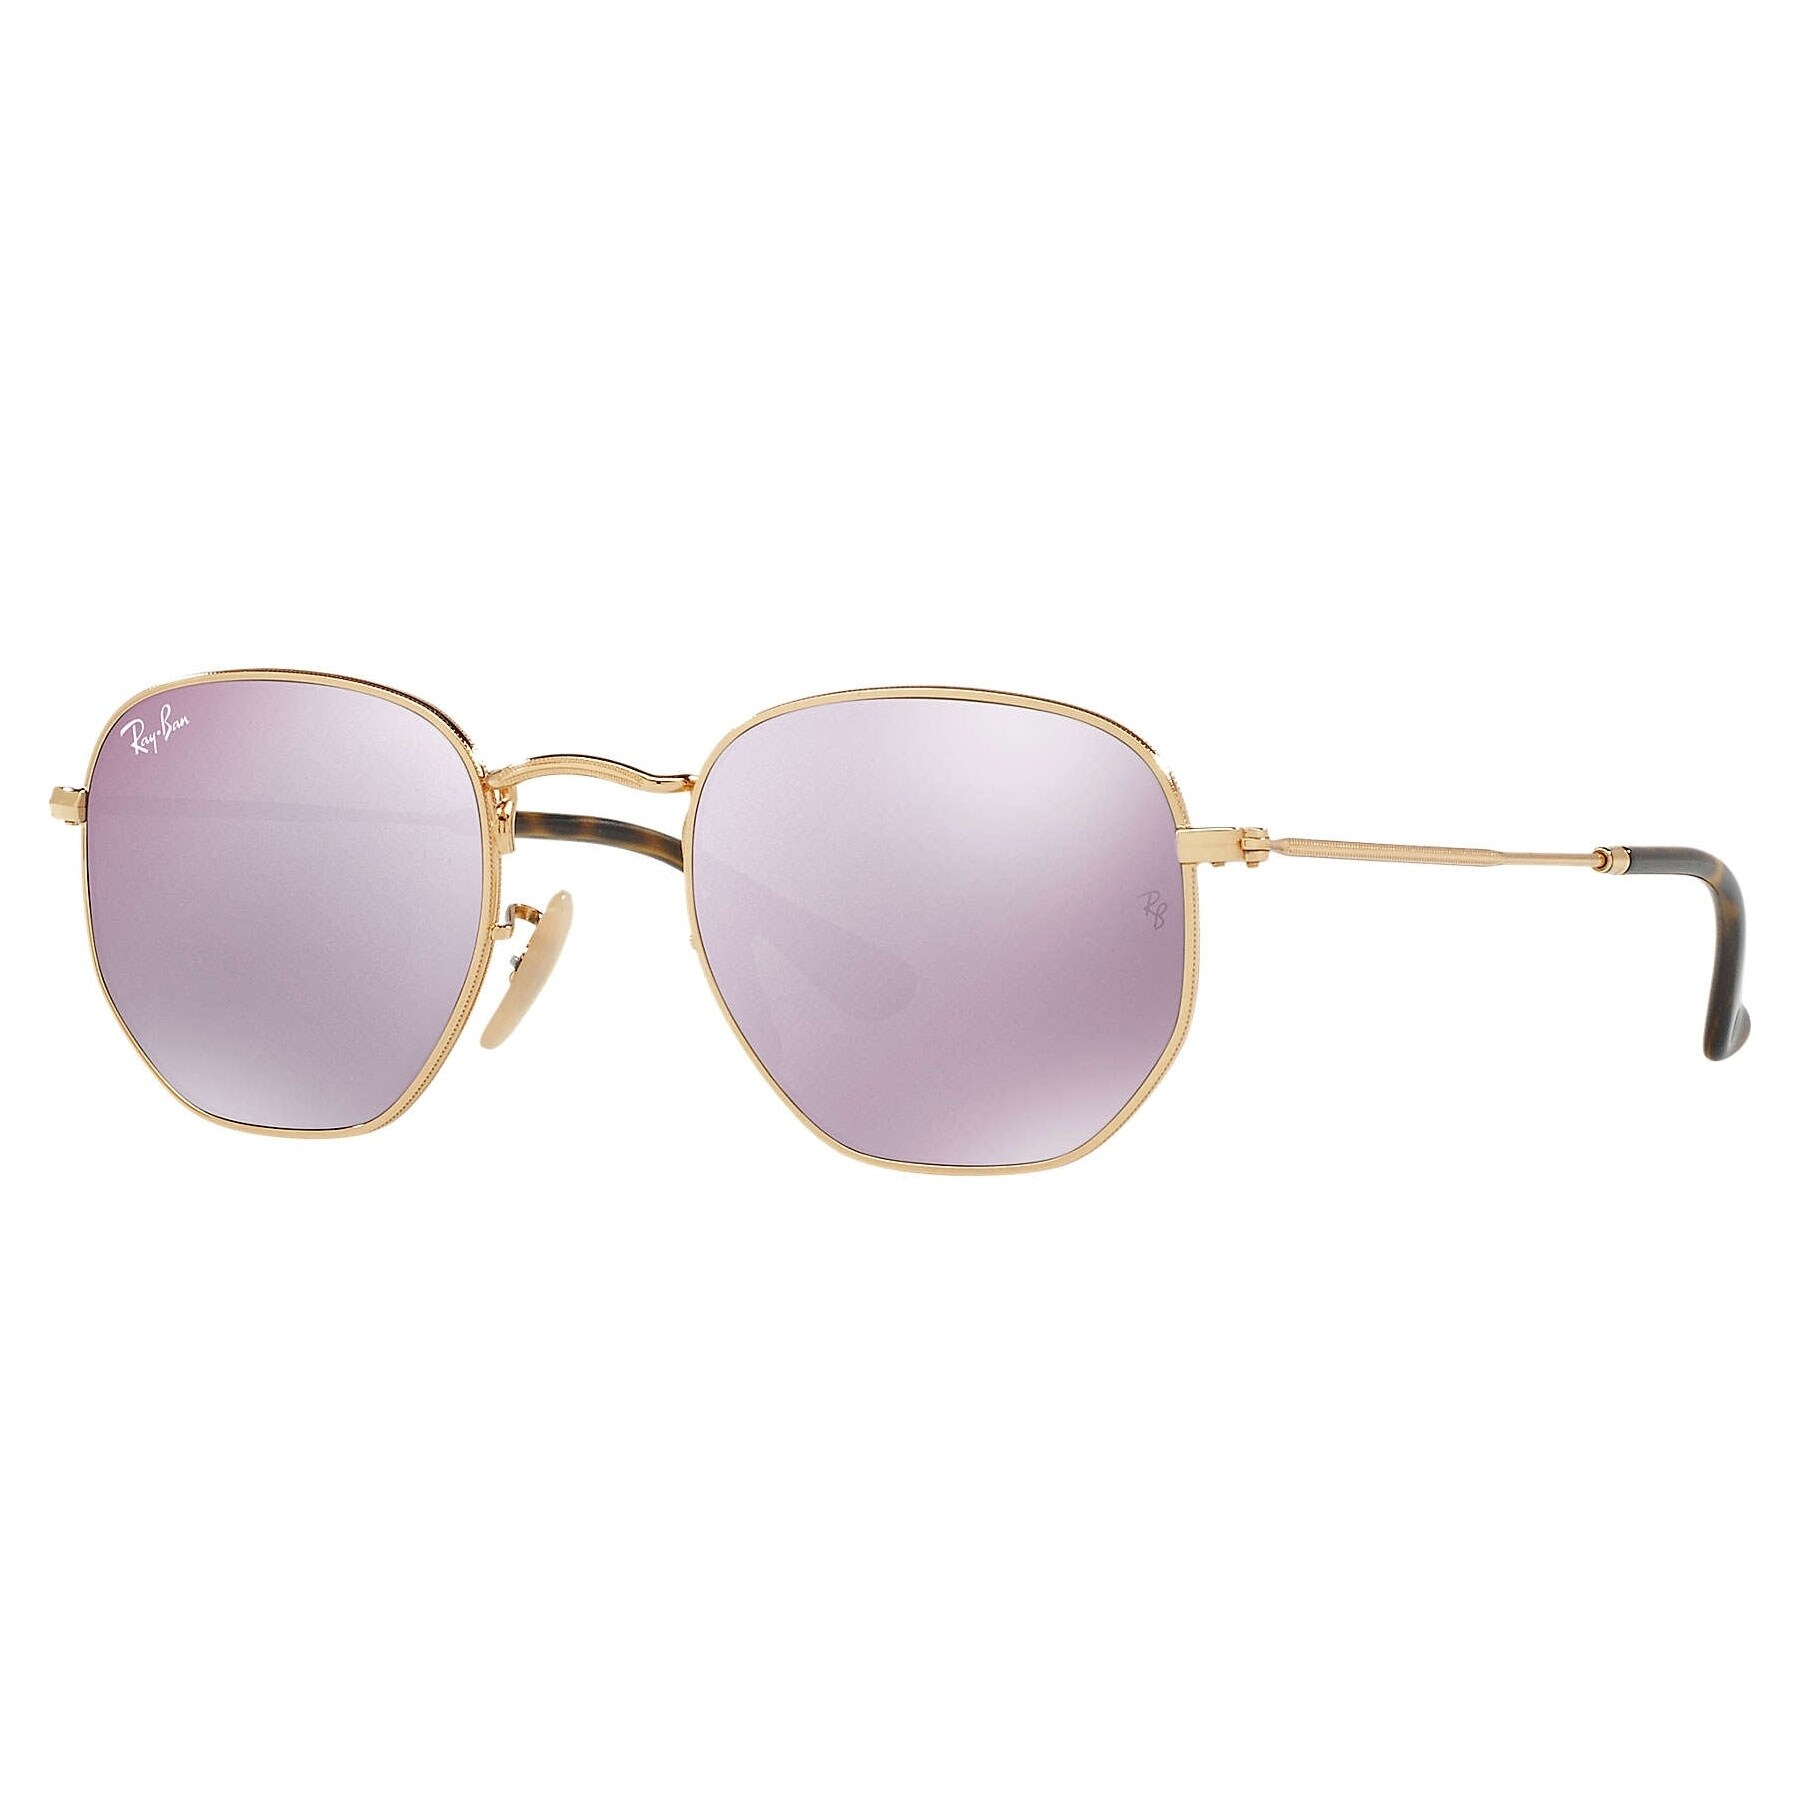 ccb4de84983f Shop Ray-Ban RB3548N Hexagonal Flat Lenses Sunglasses Gold/ Lilac Flash  51mm - Gold - Free Shipping Today - Overstock - 17334714